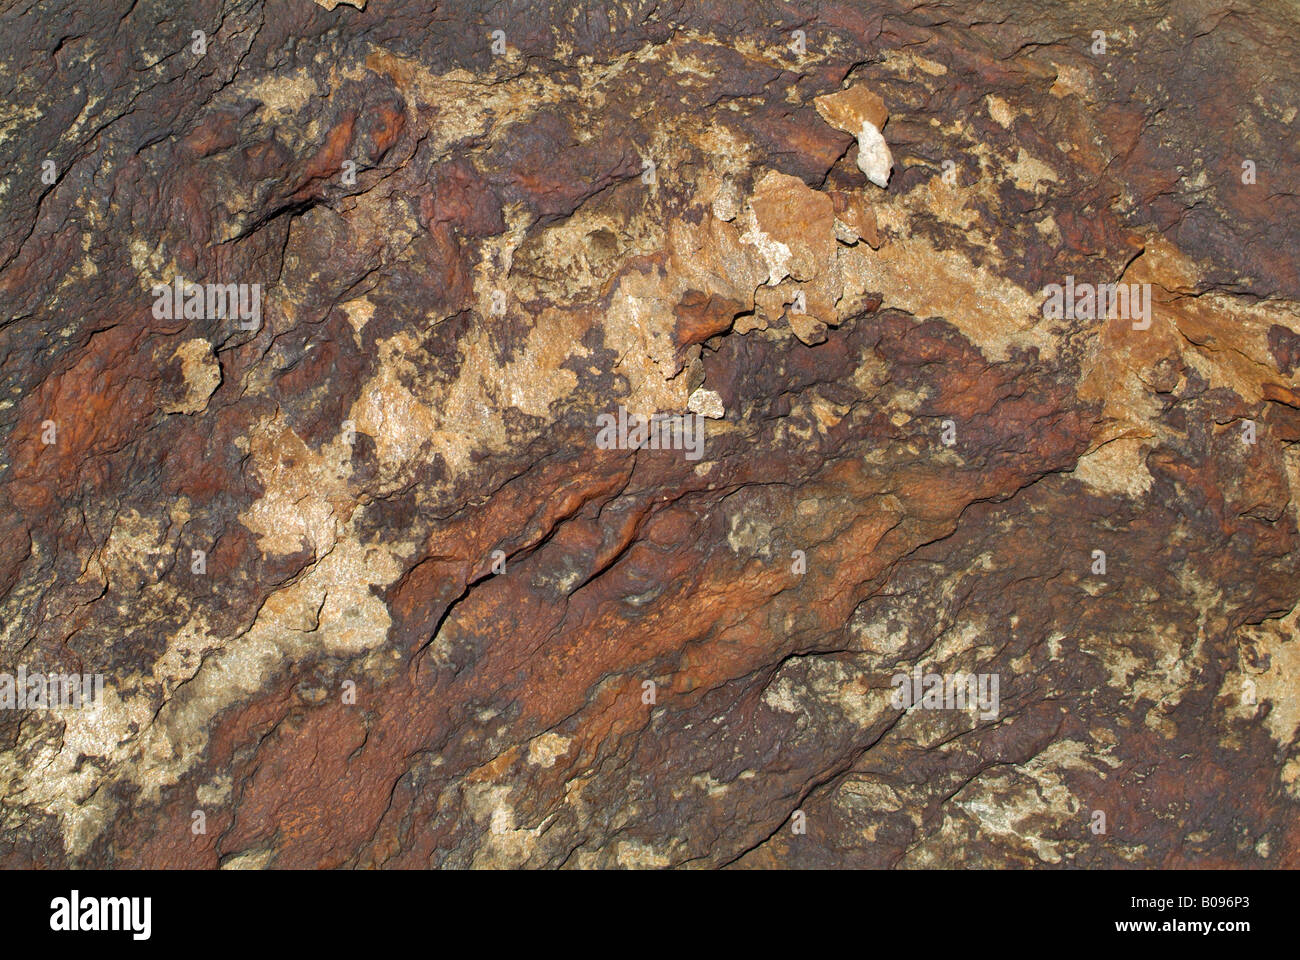 Textured rock surface, Sandersee, Hohe Tauern National Park, Carinthia, Austria - Stock Image